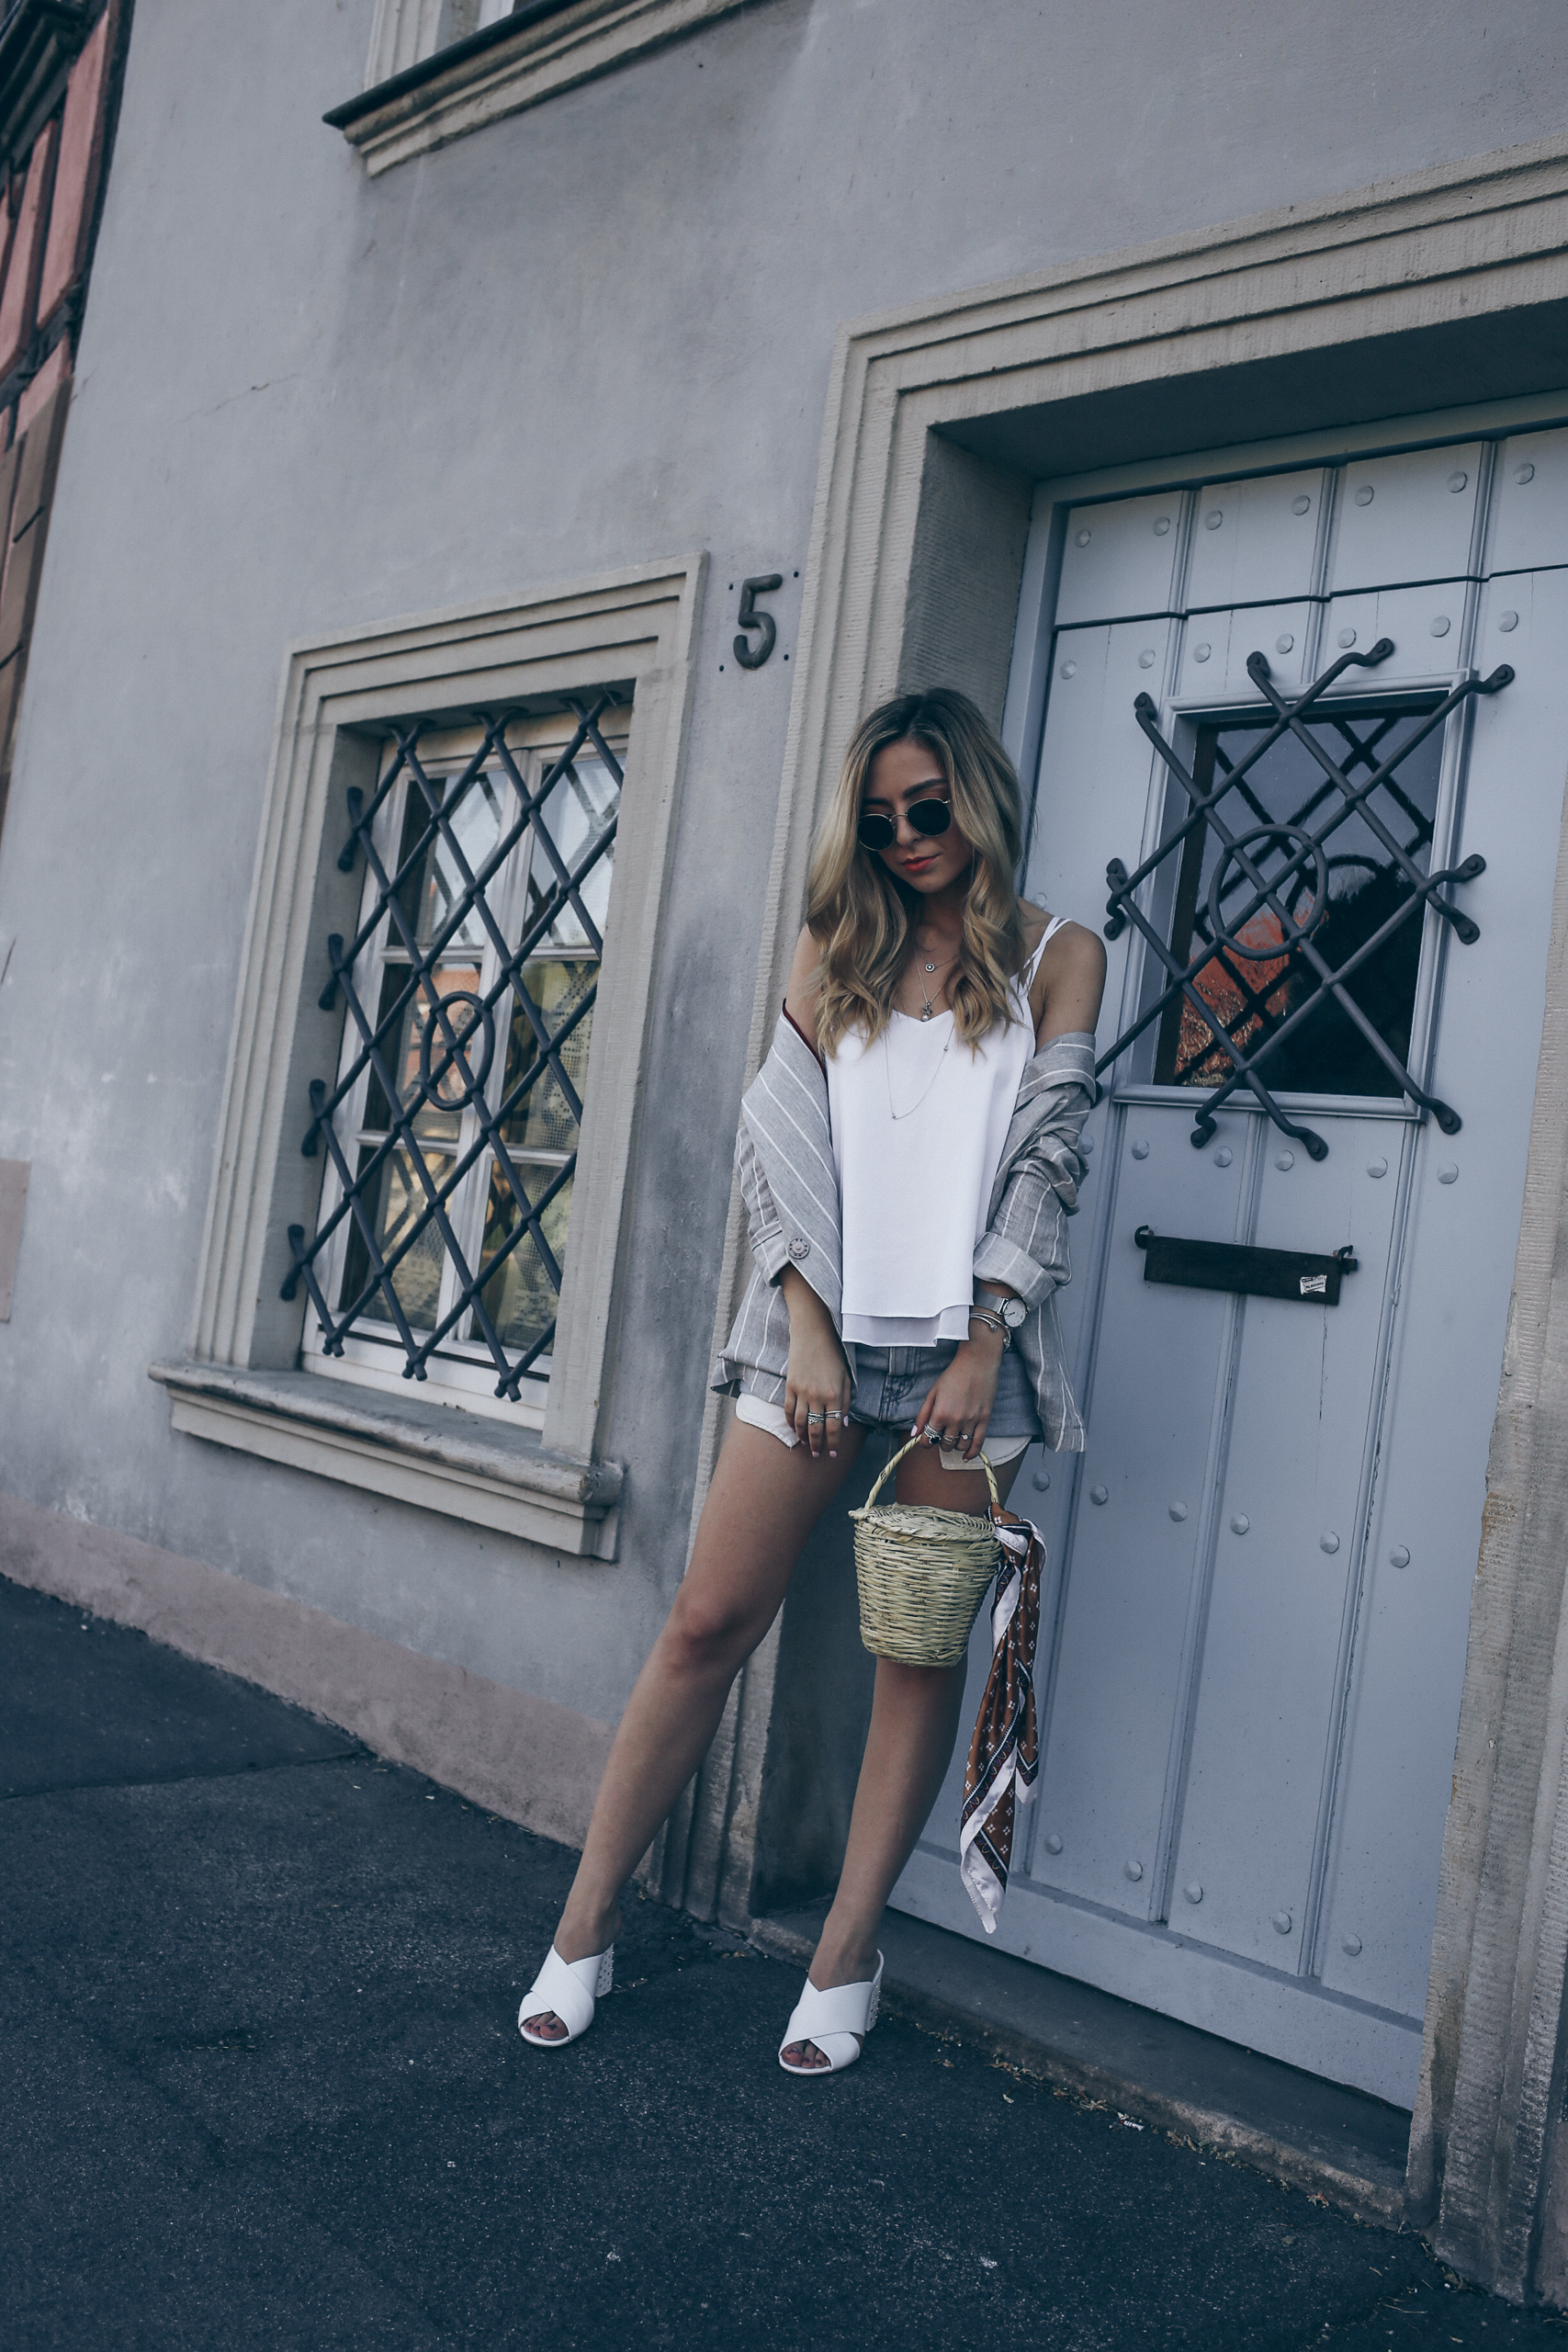 Grey Blazer Women Outfit for Summer 2017 Levi's Vintage Denim Shorts | Want Get Repeat Fashion Blog Modeblog Nürnberg Erlangen